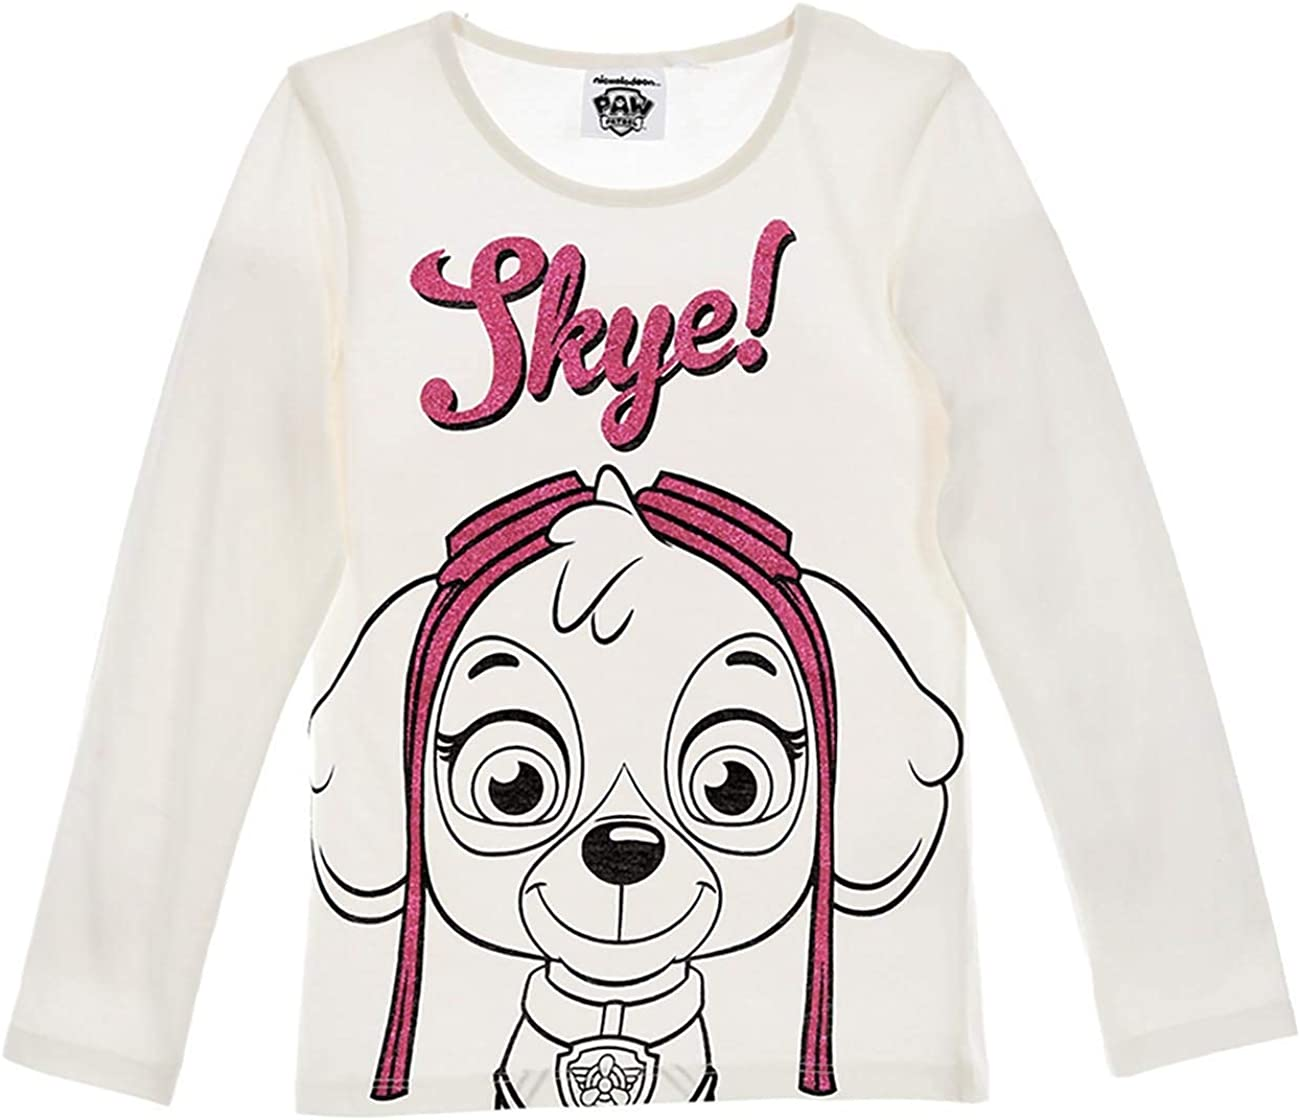 New 2018//19 Paw Patrol Nickelodeon Official Licensed Long Sleeve Girls Top T-Shirt 100/% Cotton 2-8 Years